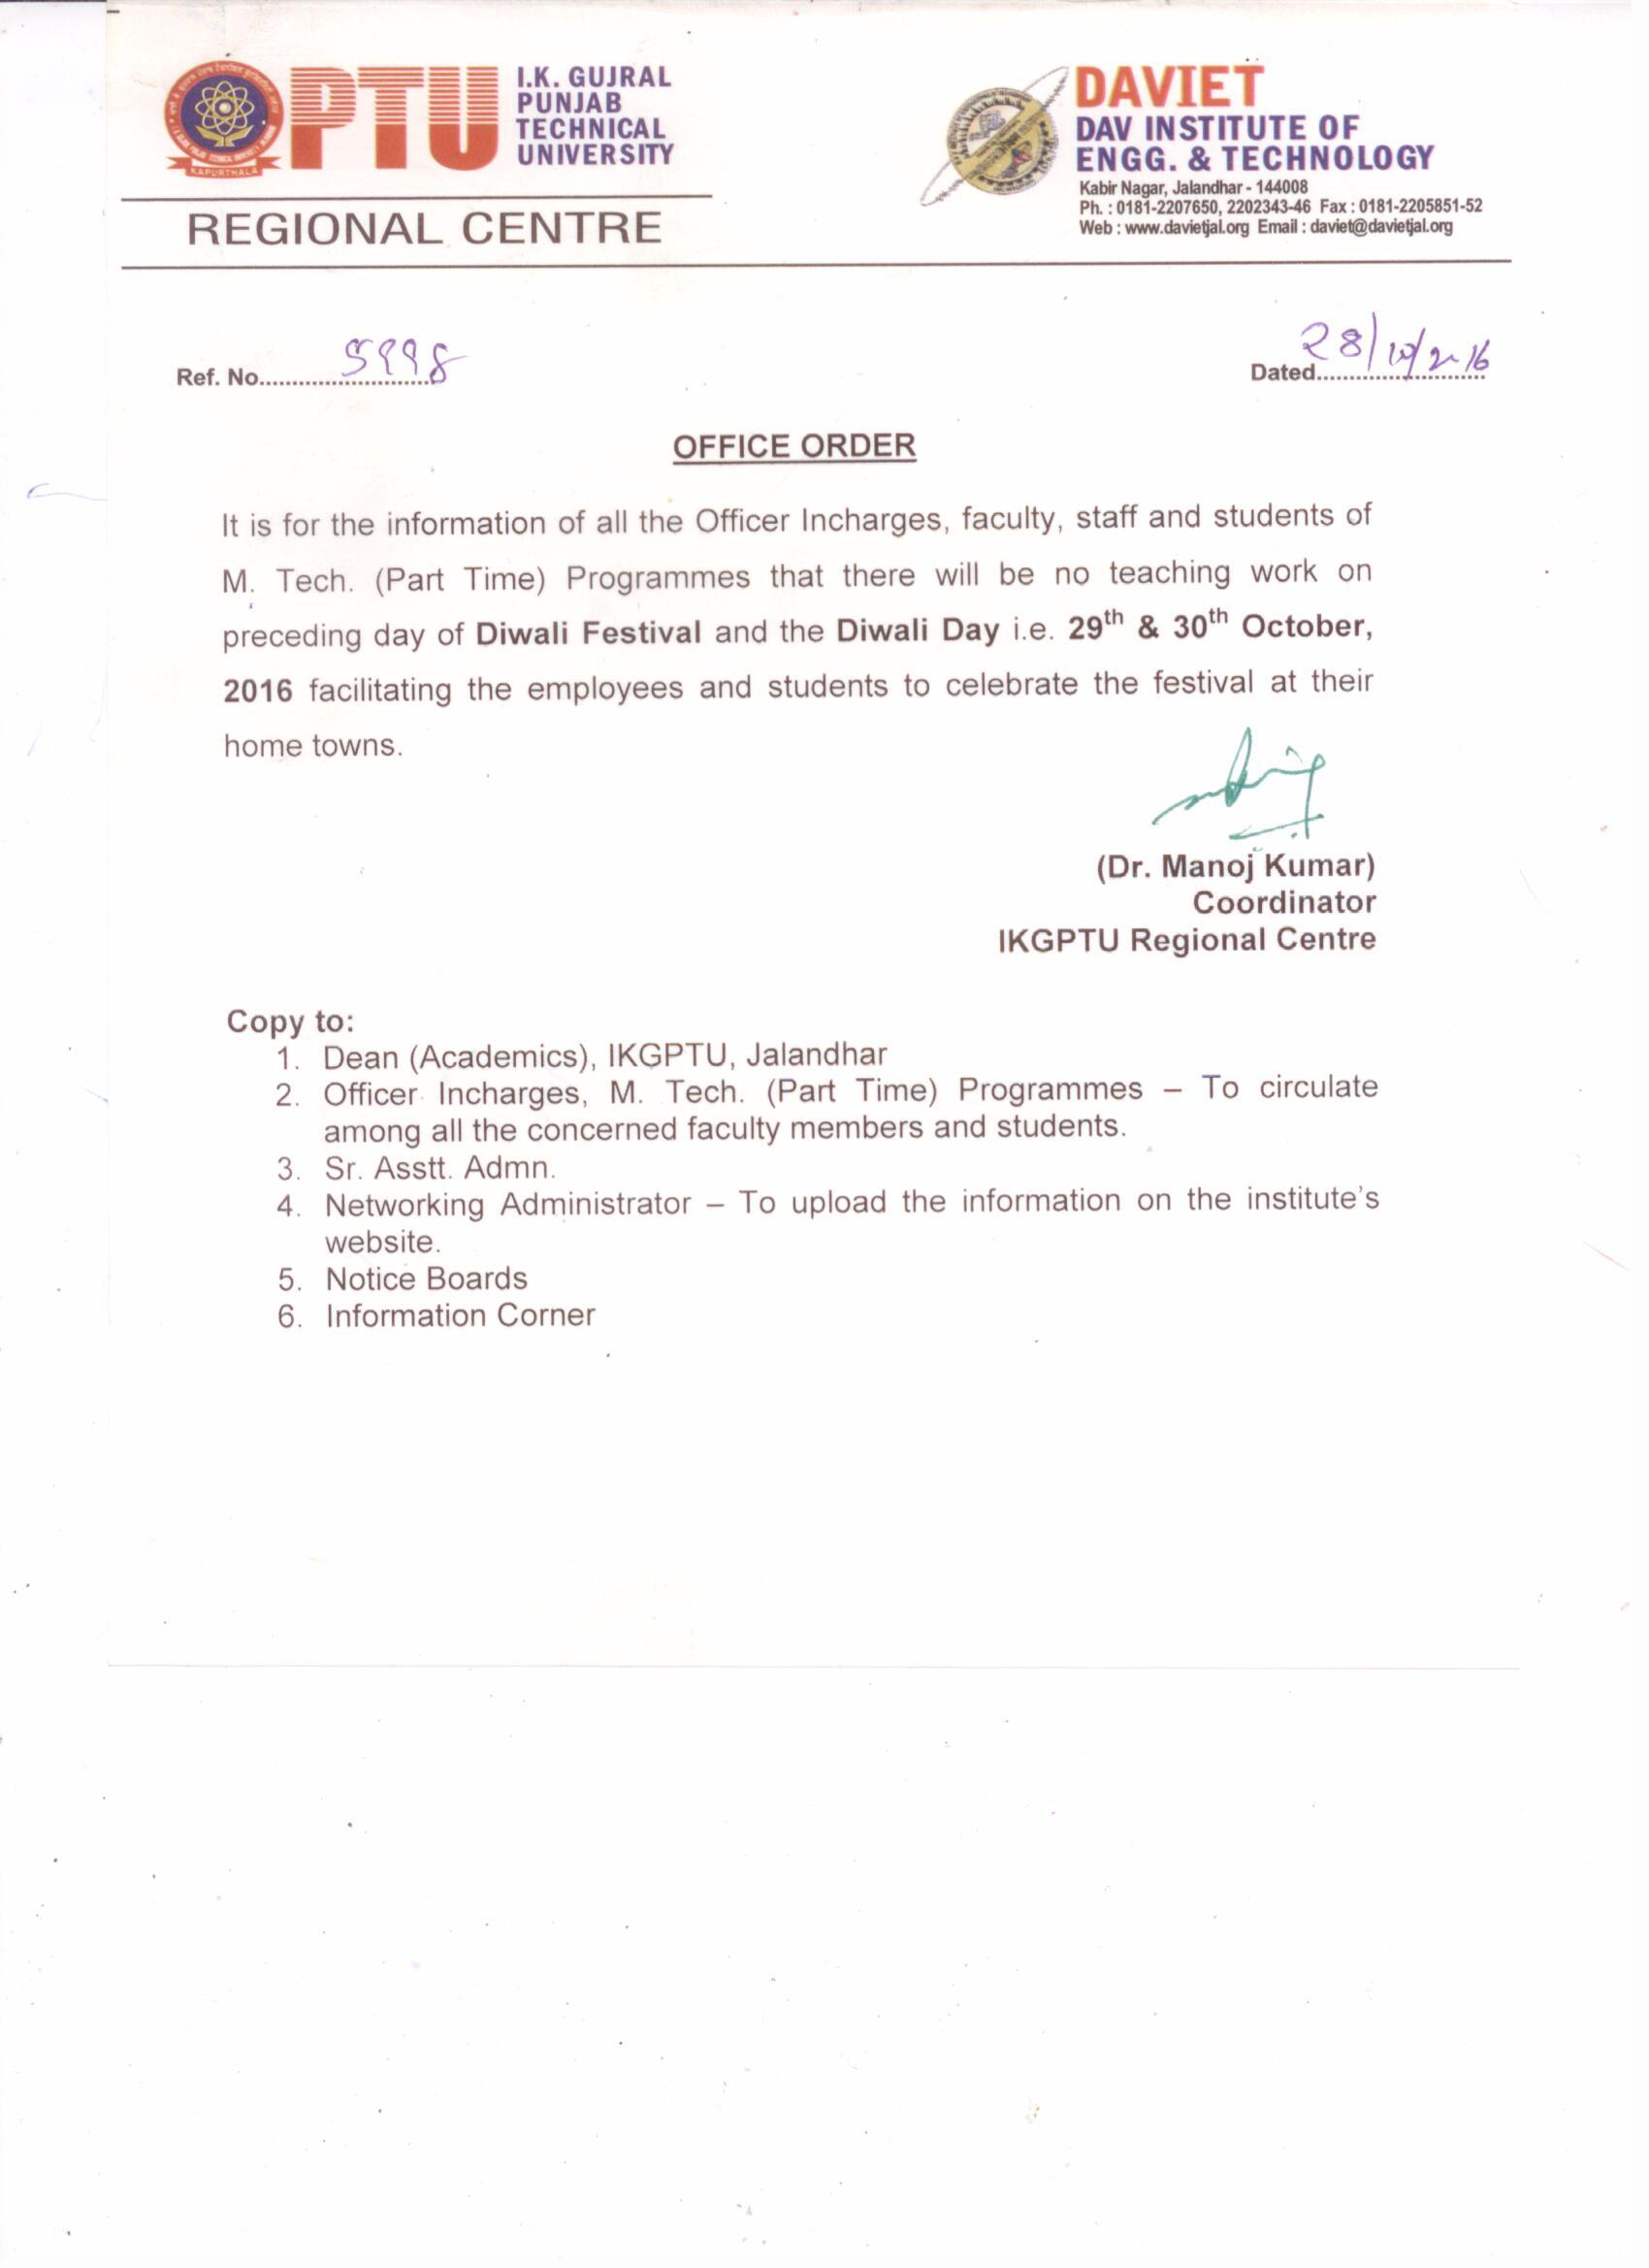 OFFICE ORDER FOR DIWALI HOLIDAY - DAVIET College